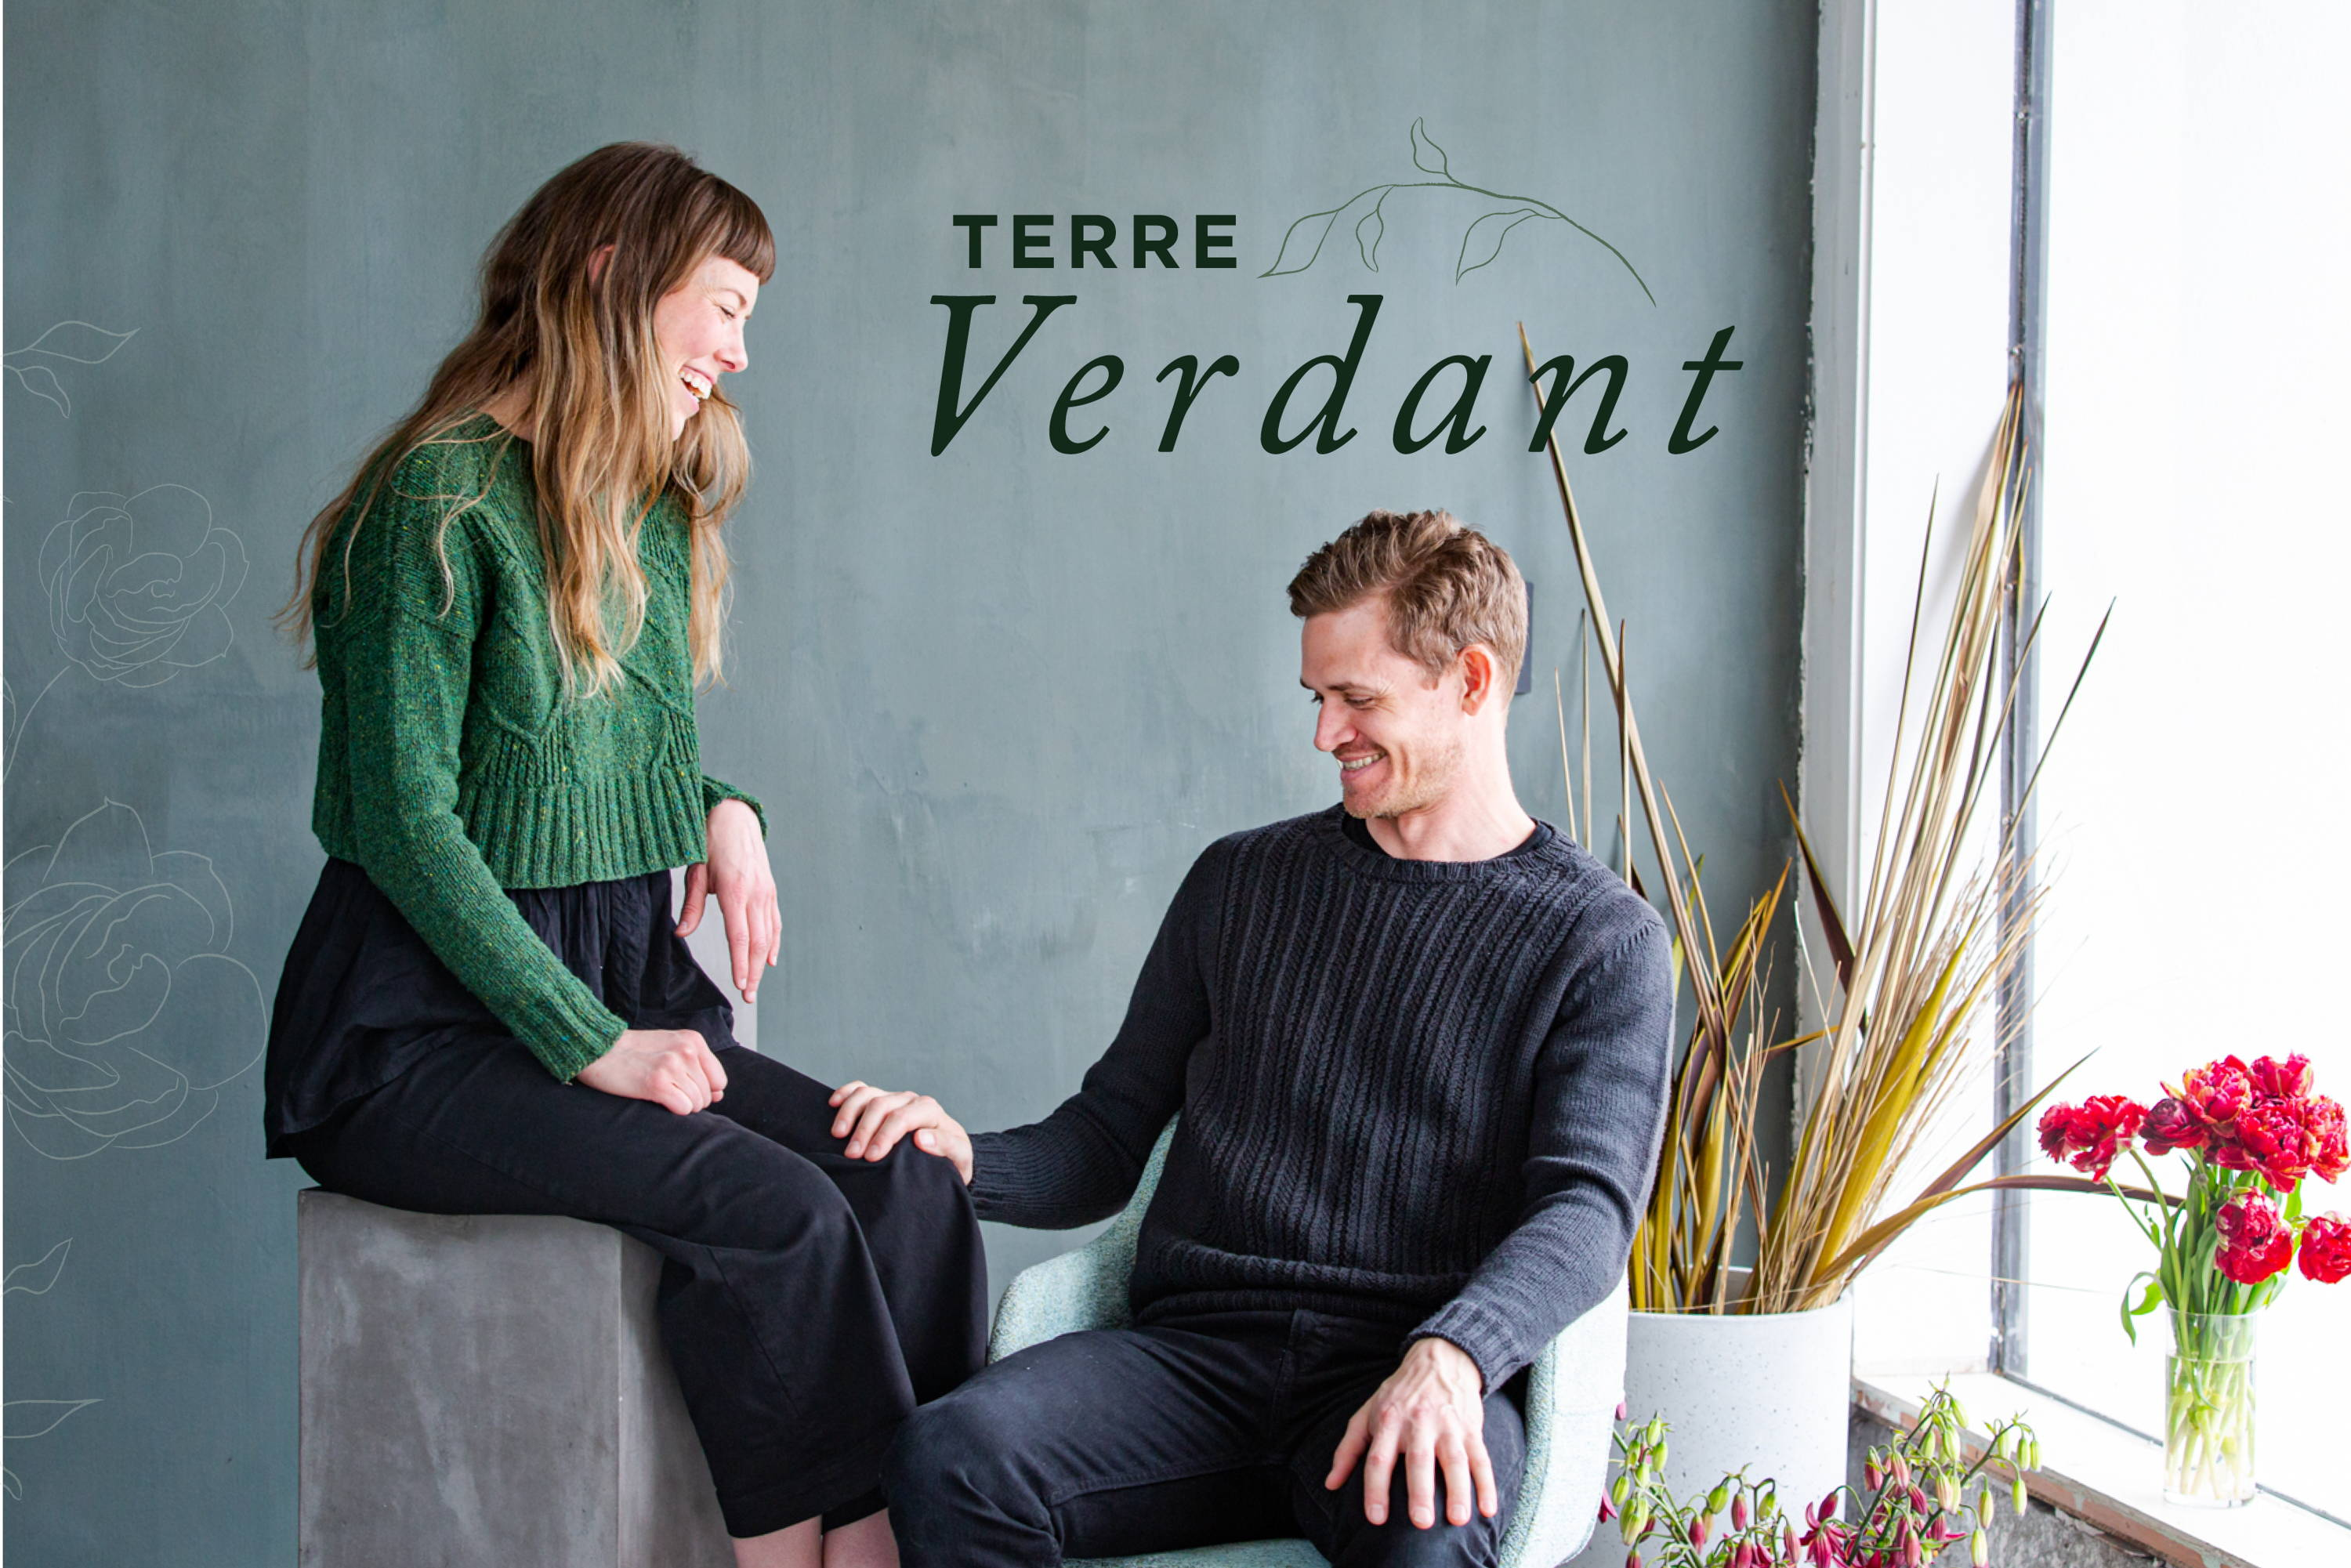 Terre Verdant | Image of Alyssa (woman) modeling Broadleaf and Brian (man) modeling Haskins